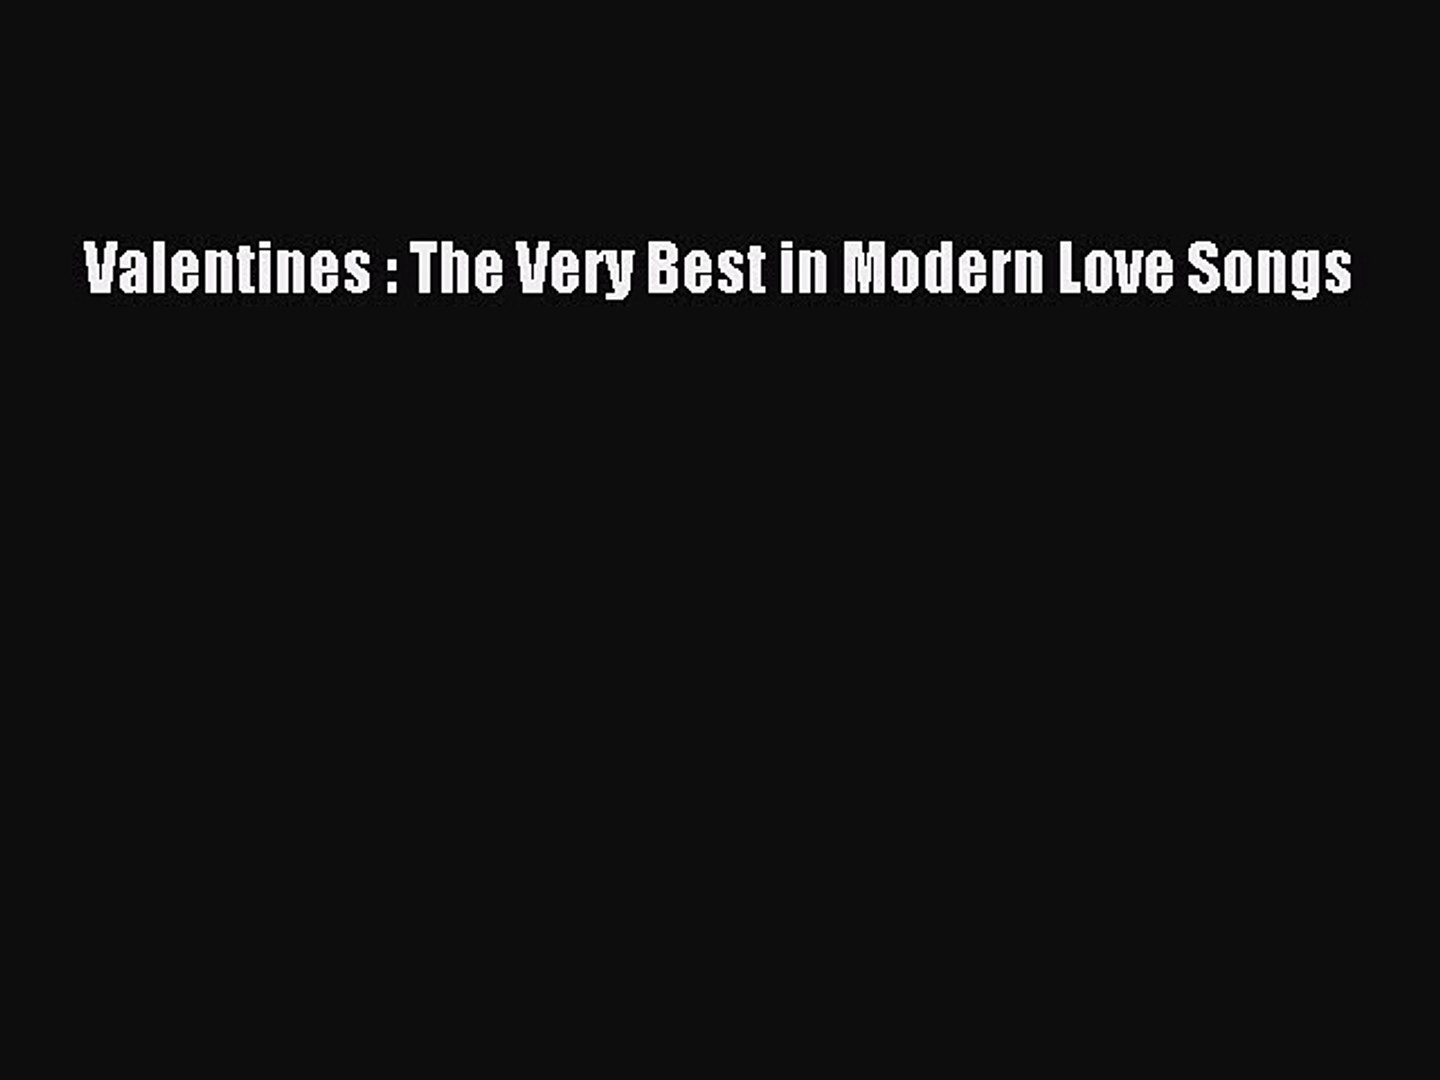 Pdf Download Valentines The Very Best In Modern Love Songs Read Online Video Dailymotion